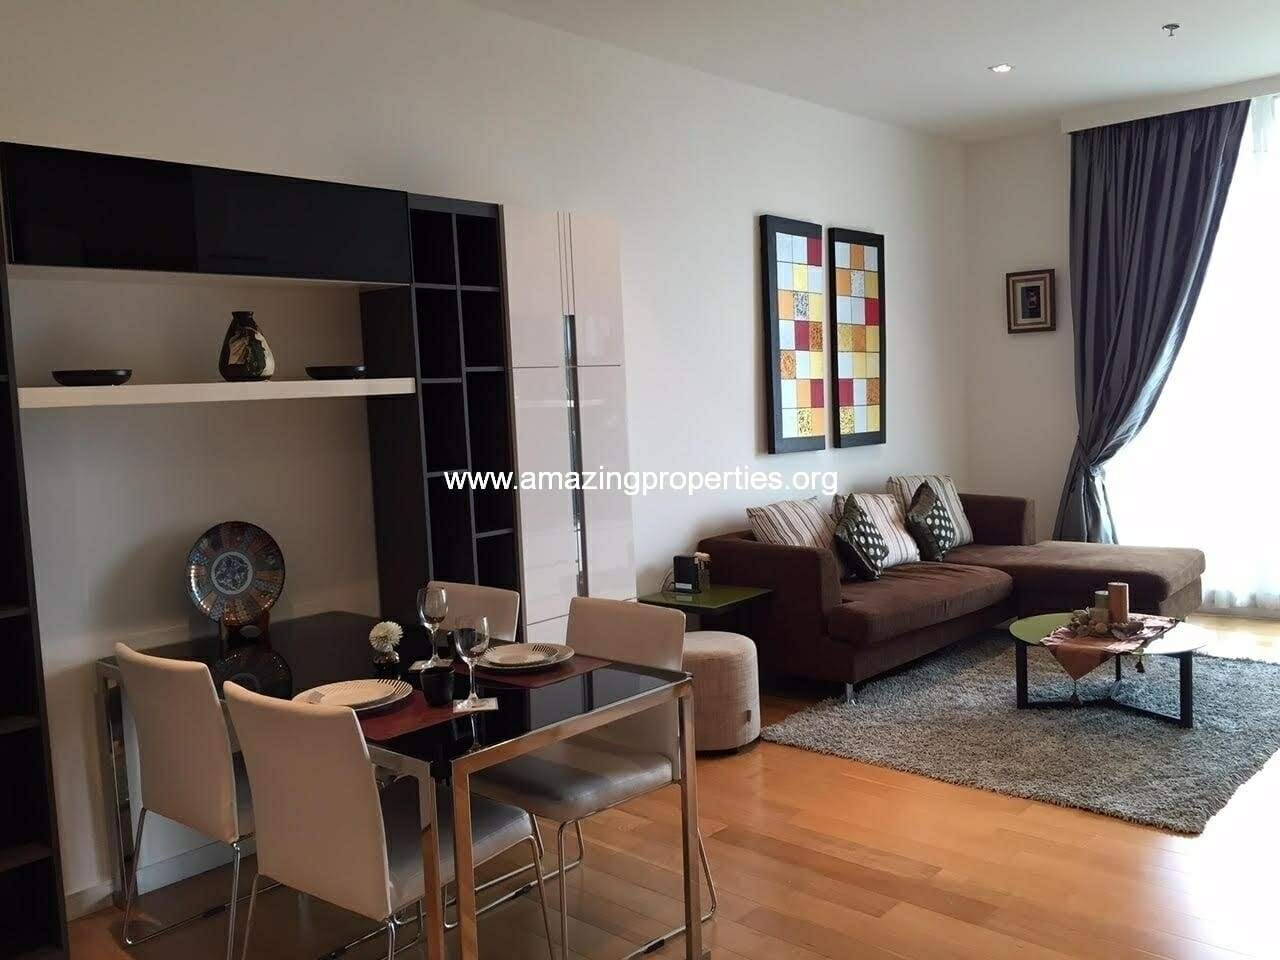 1 bedroom condo for sale with Tenant